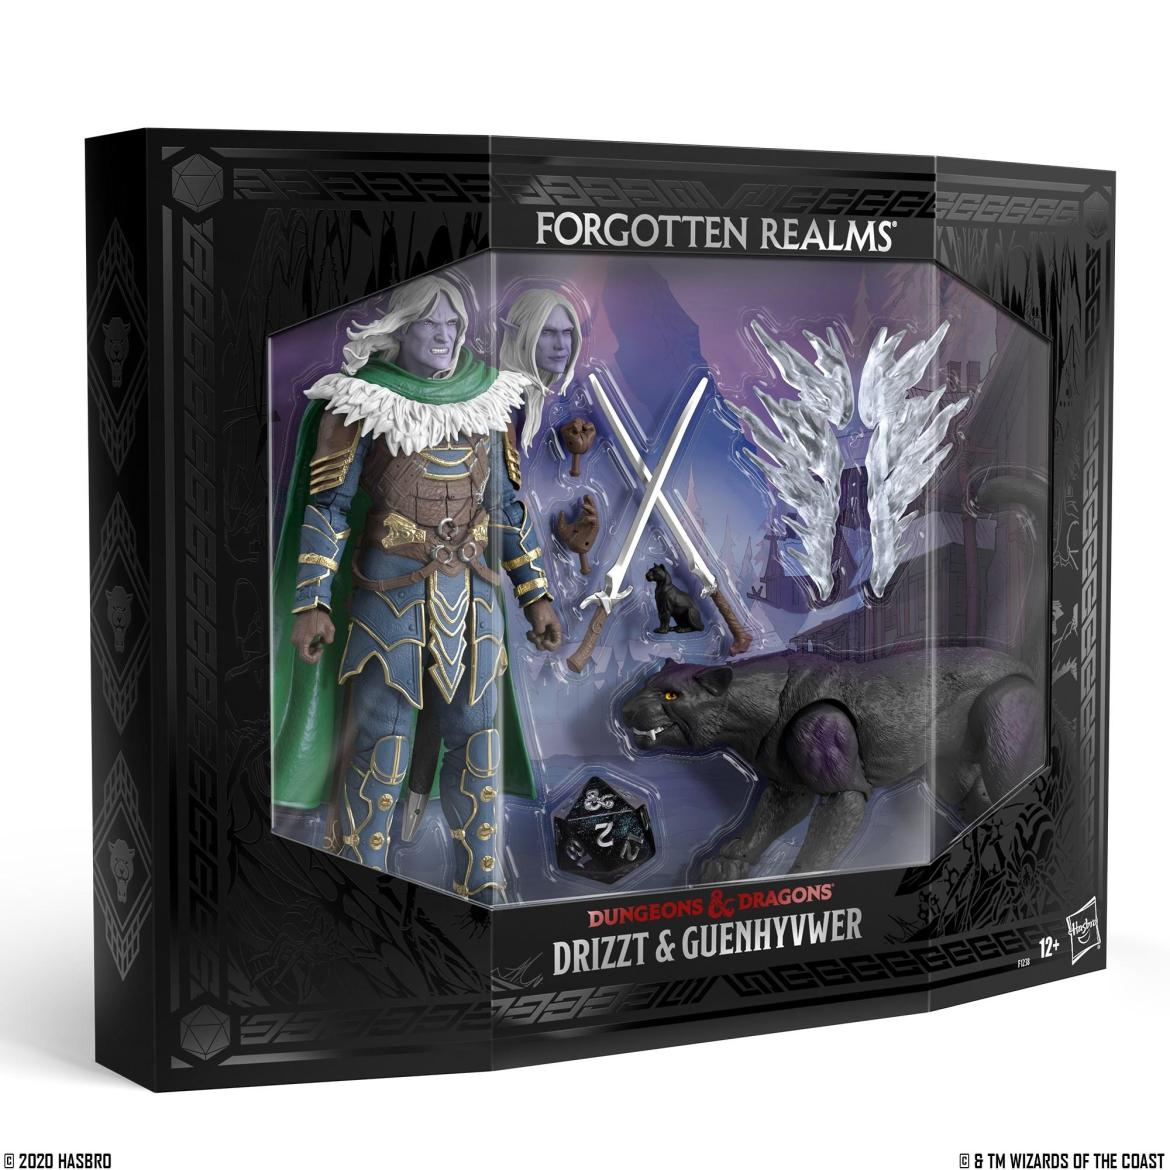 Dungeons & Dragons Drizzt and Guenhwyvar